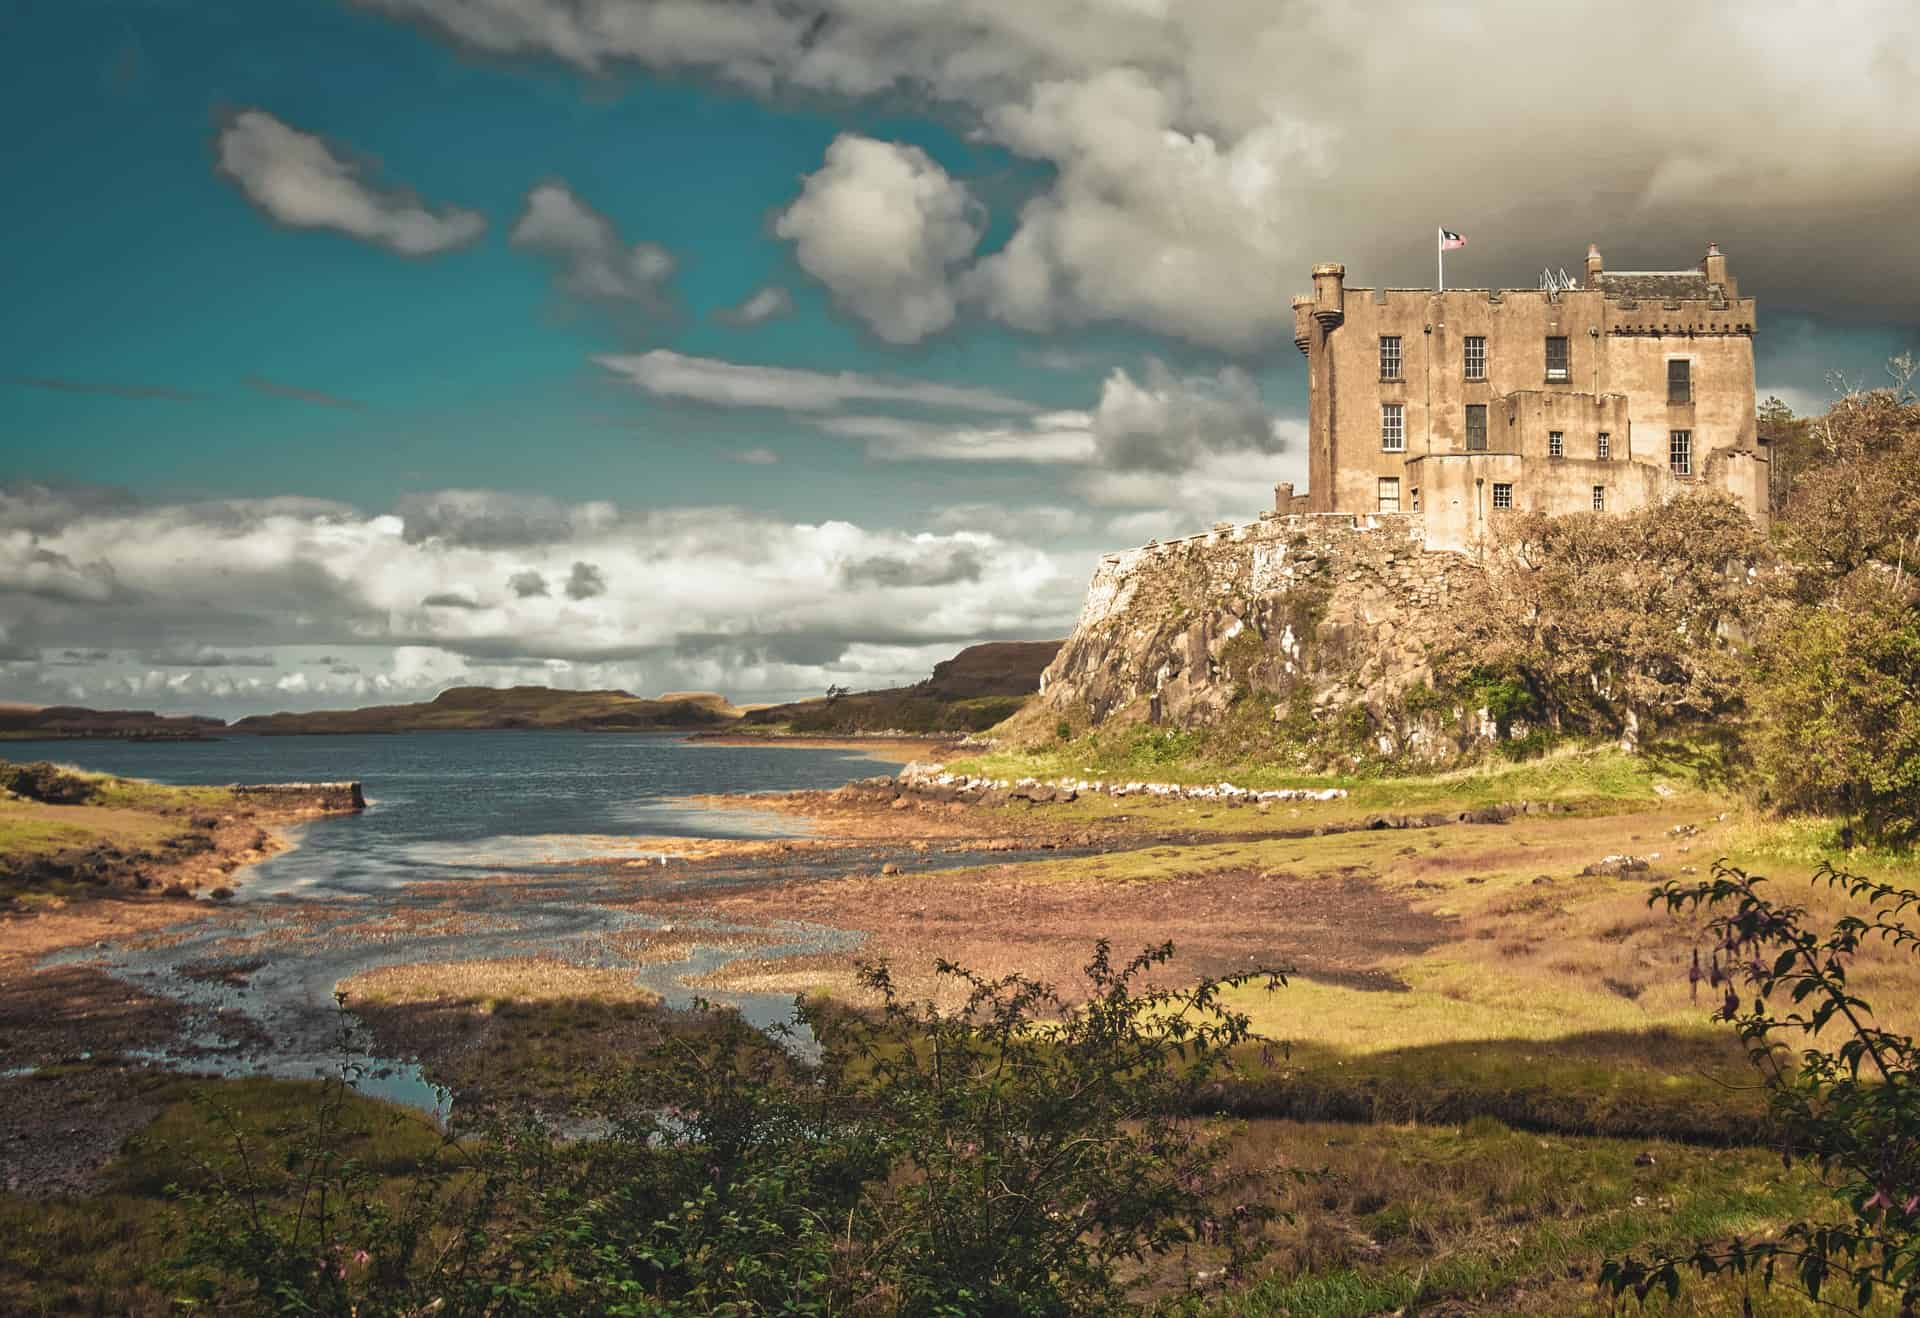 Dunvegan Castle, located off the west coast of Scotland